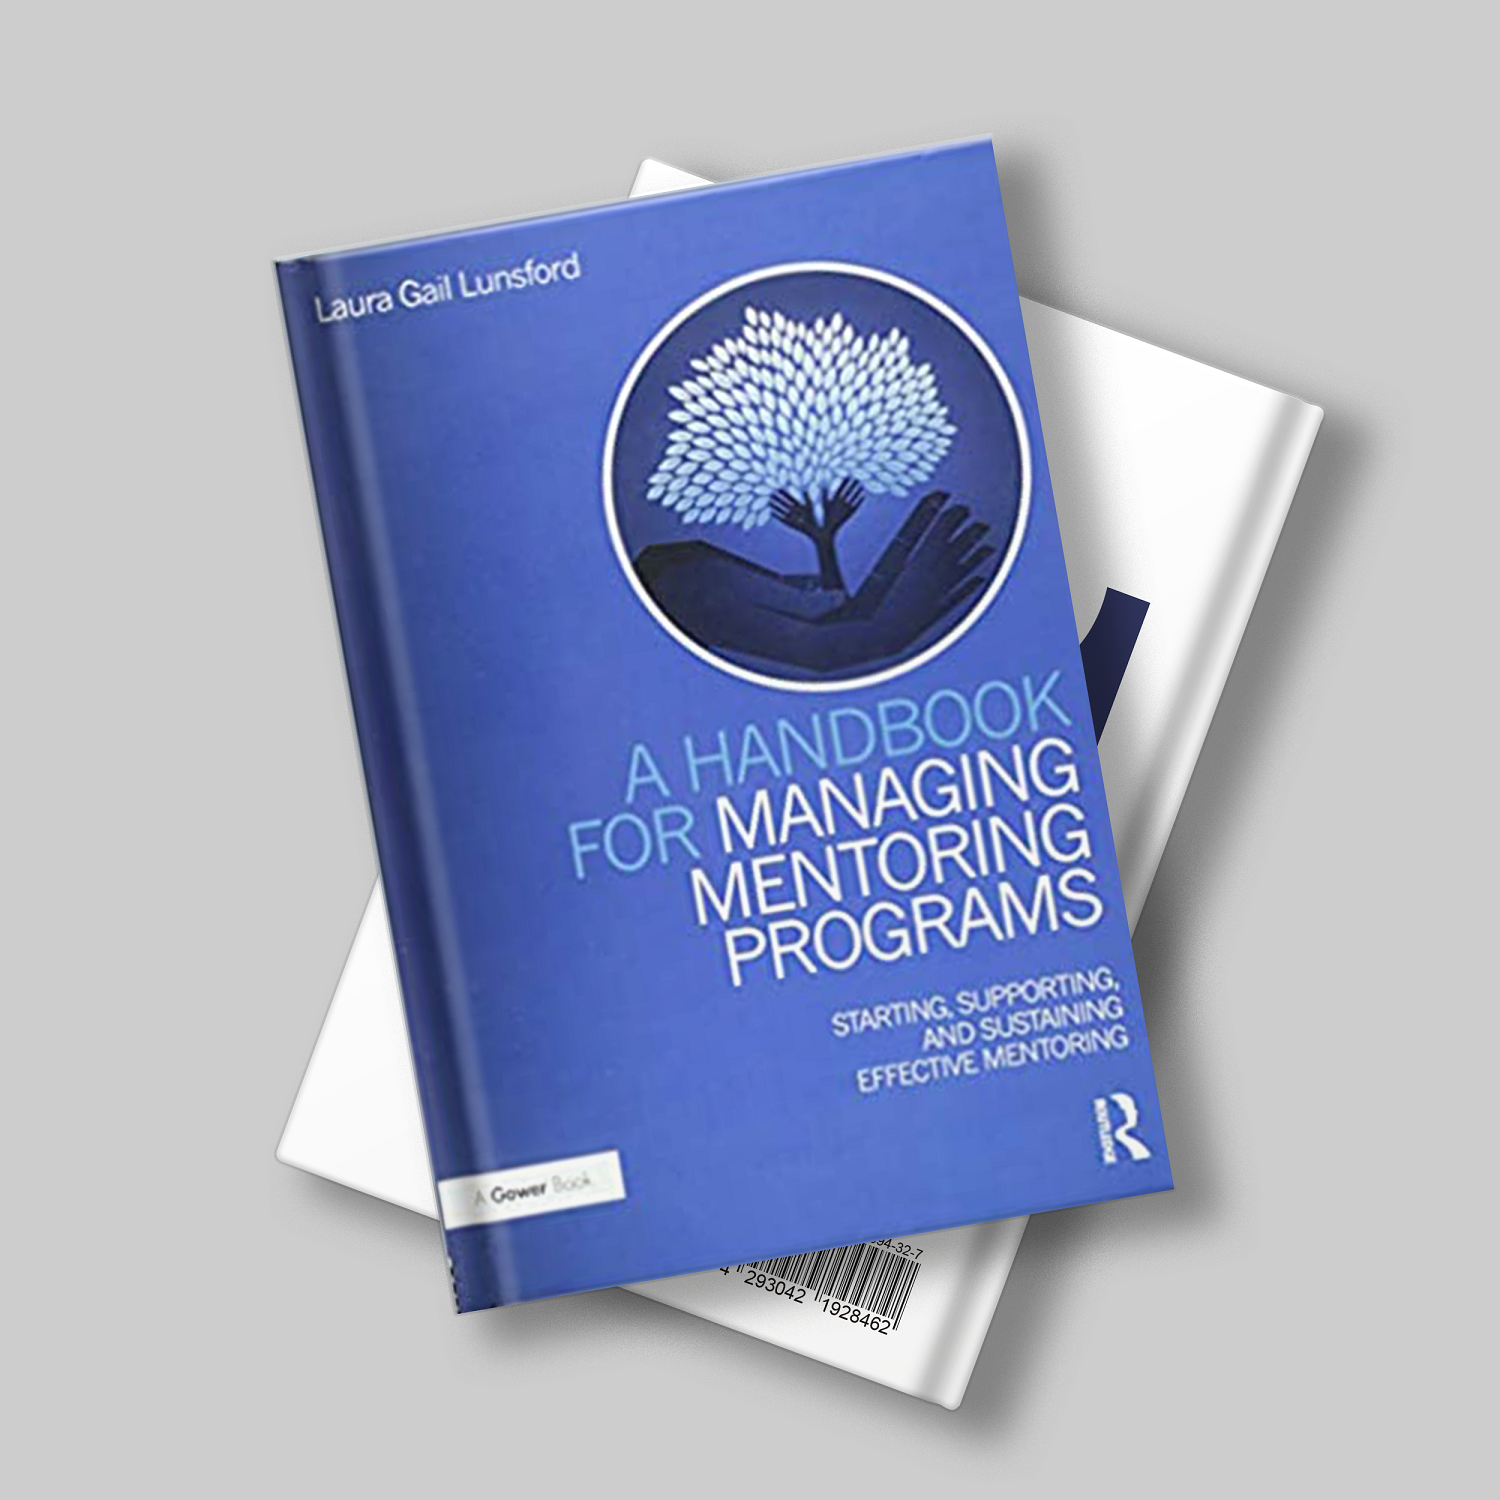 A HANDBOOK FOR MANAGING MENTORING PROGRAMS: STARTING, SUPPORTING AND SUSTAINING